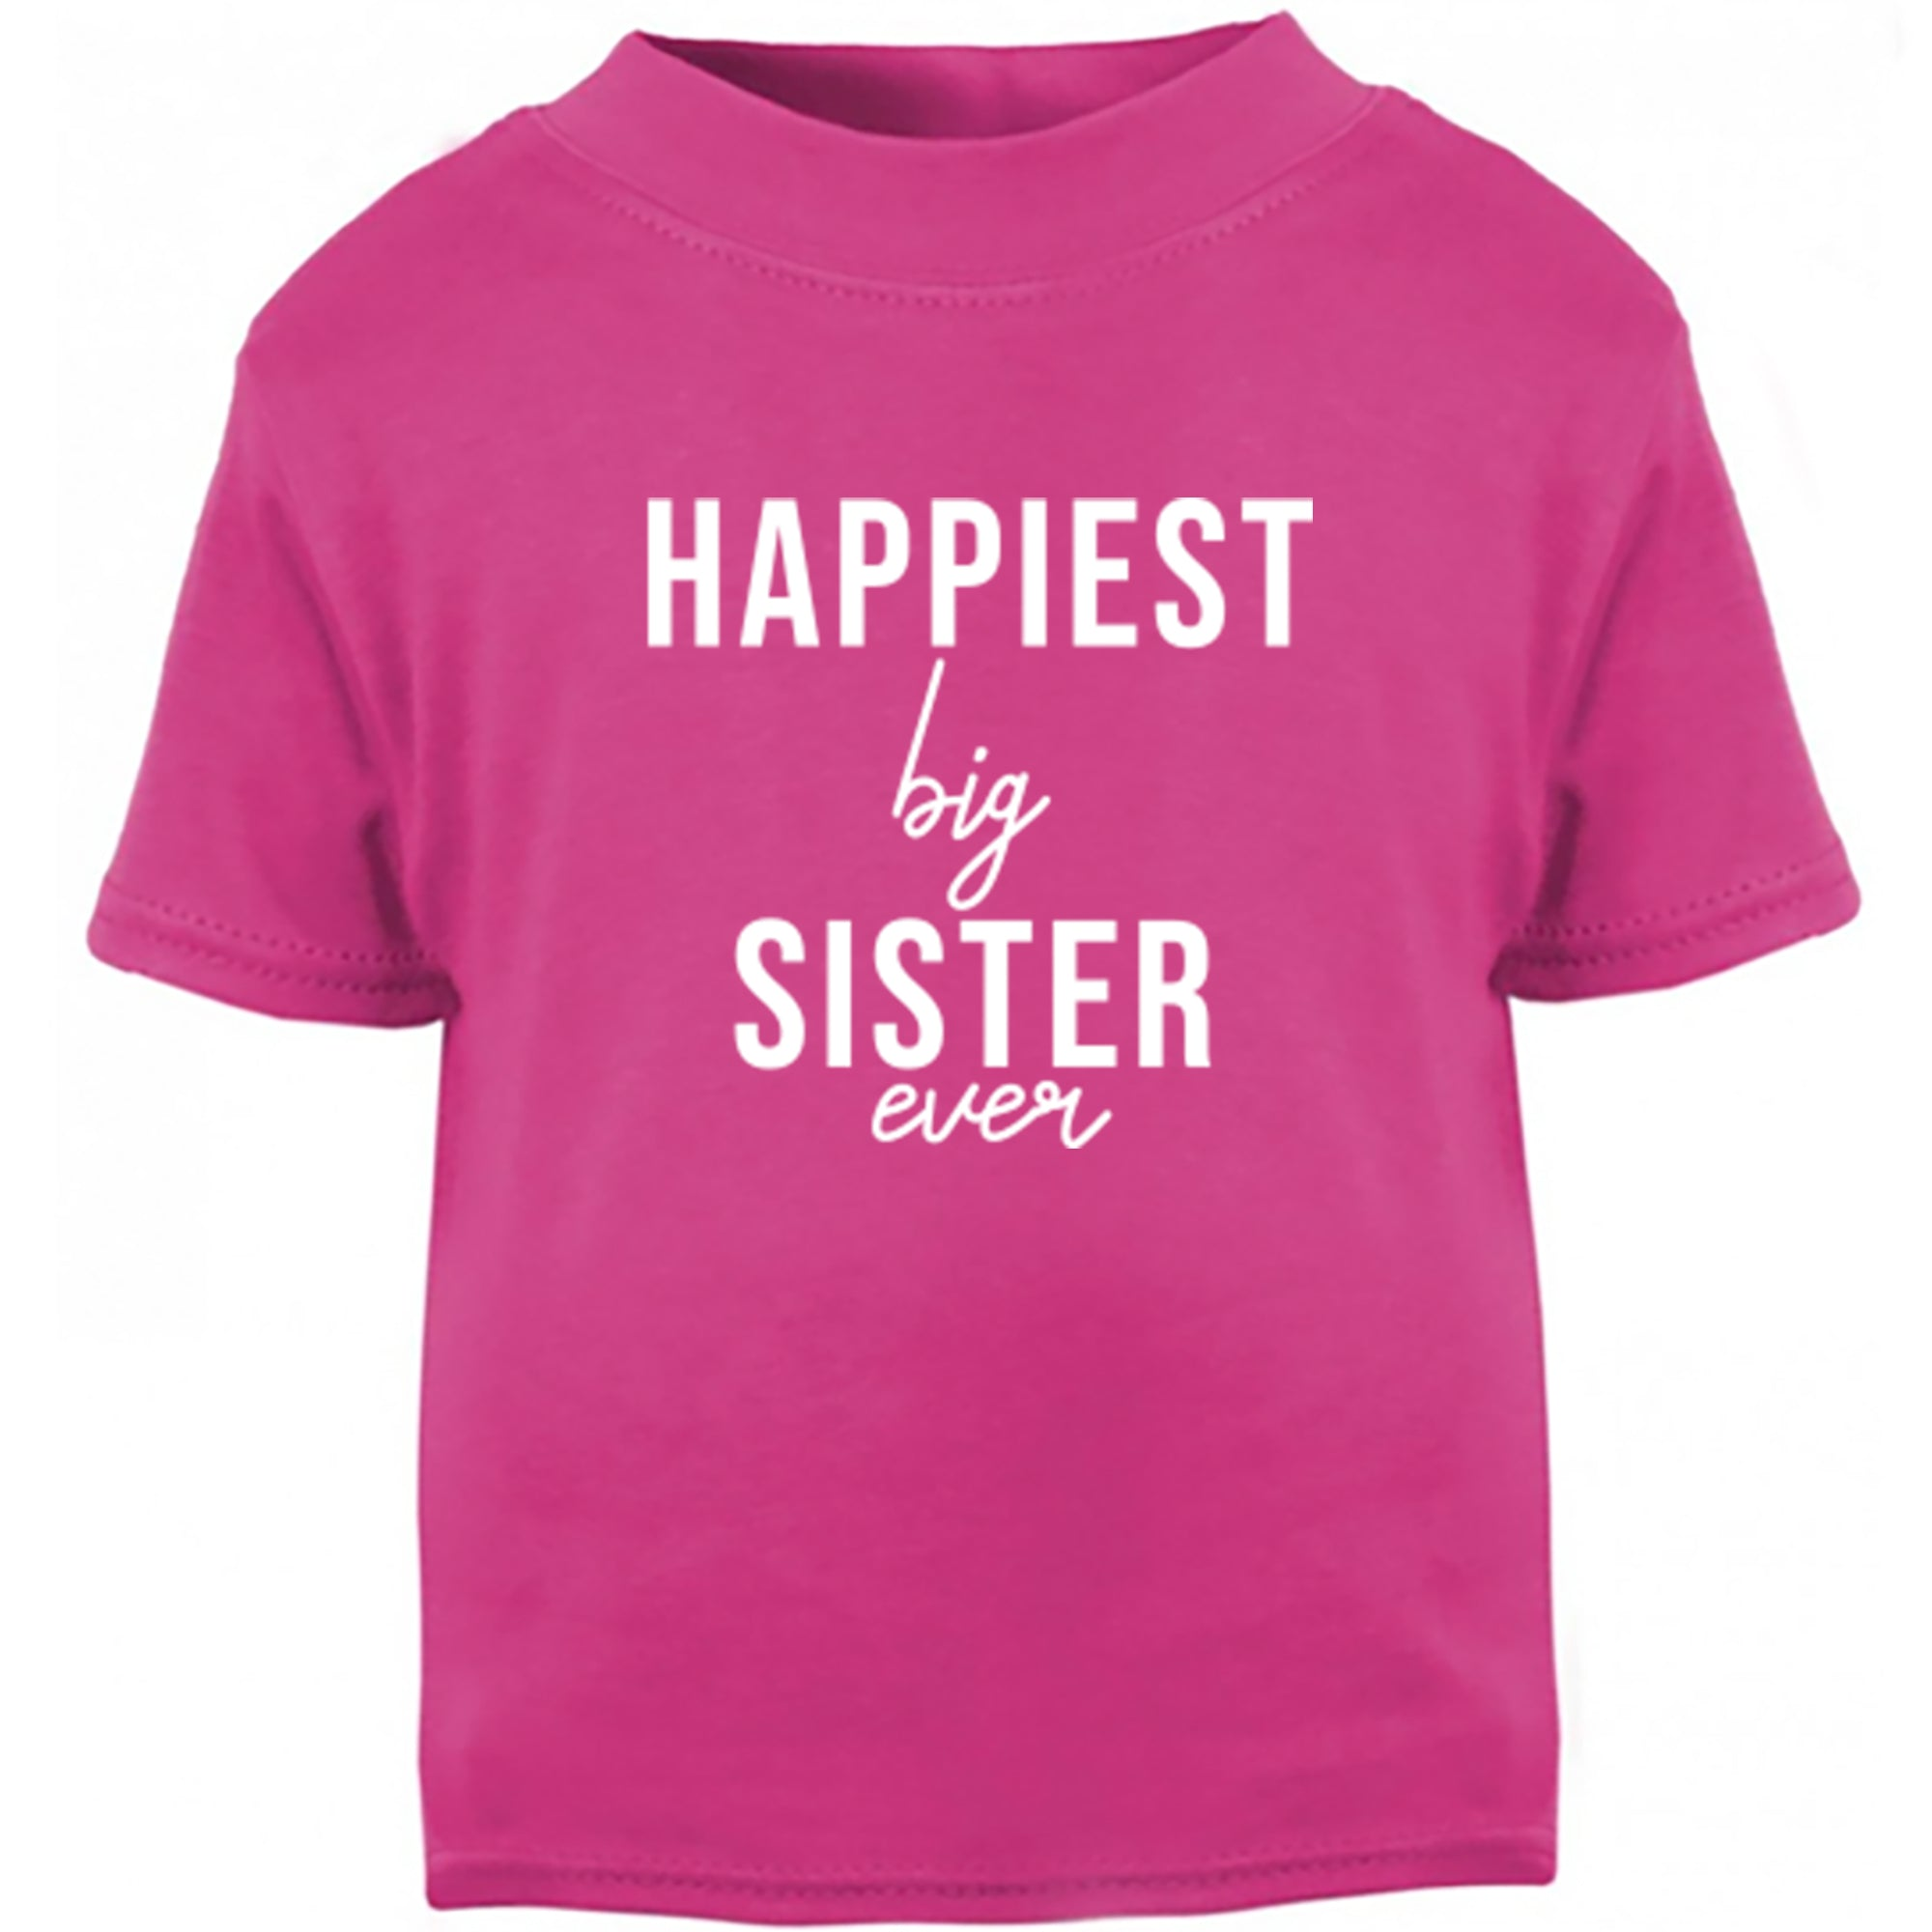 Happiest Big Sister Ever Childrens Ages 3/4-12/14 Unisex Fit T-Shirt S0515 - Illustrated Identity Ltd.